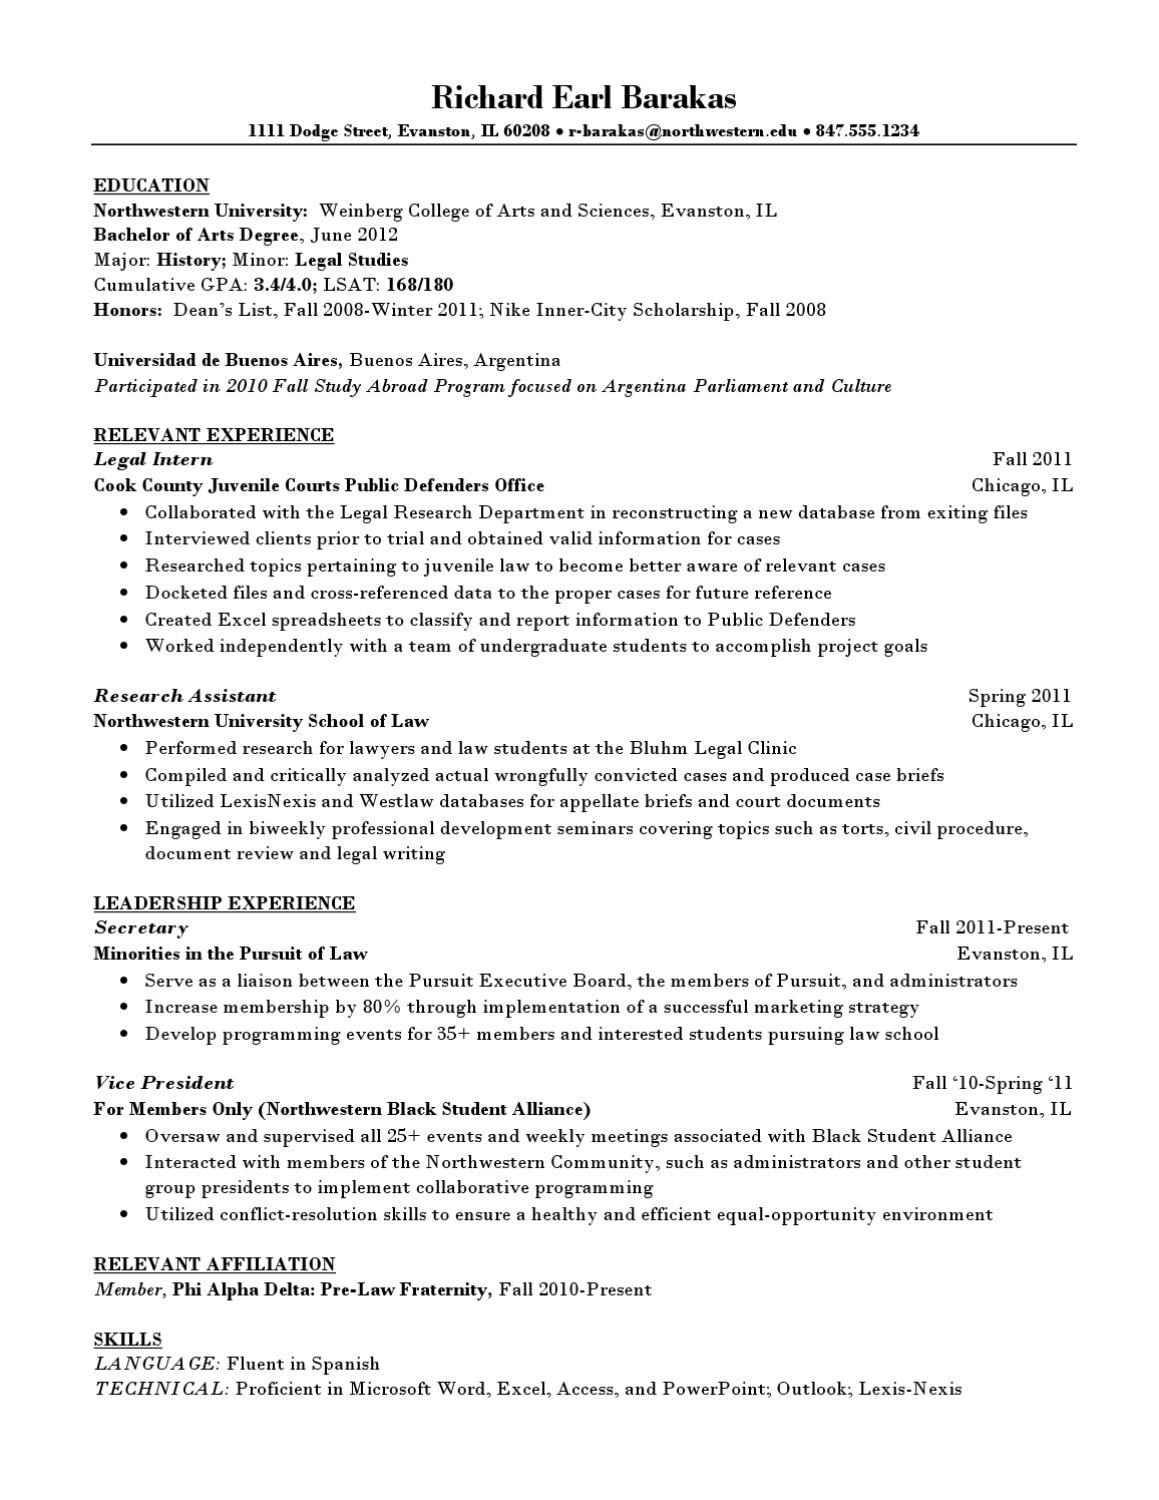 Perfect cv example 16 year old cover letter format without resume format for law school madrichimfo Choice Image